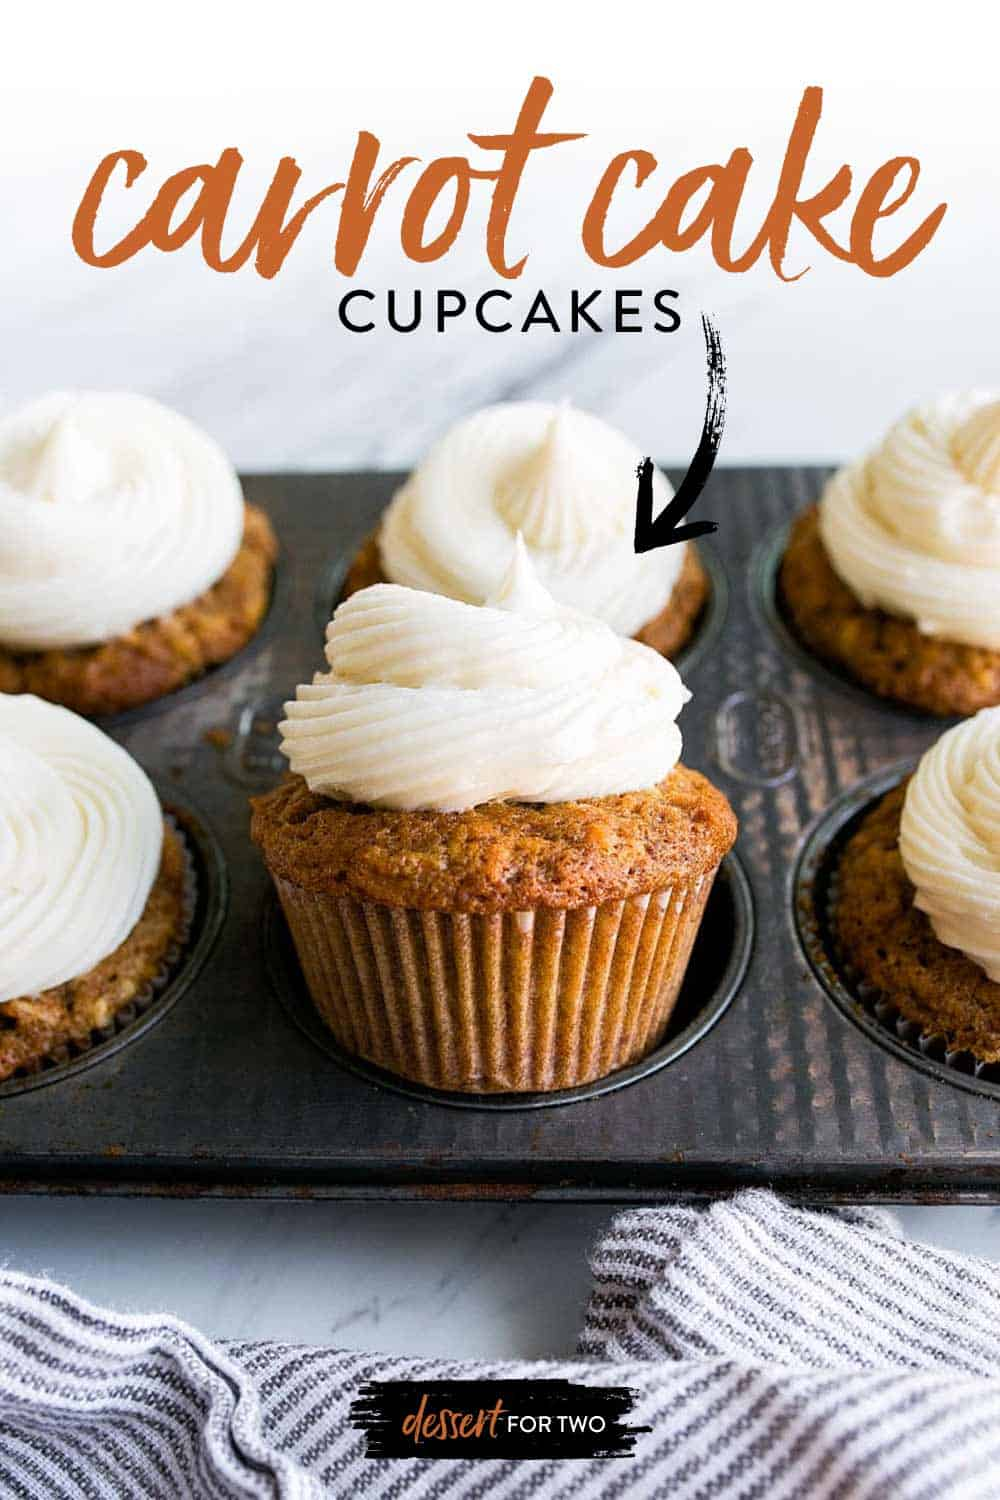 Carrot Cake Cupcakes with Cream Cheese Frosting. Small batch carrot cake recipe makes just 6 cupcakes. Perfect carrot cake cupcakes with the fluffiest pipe-able cream cheese frosting. Your Easter dessert has arrived! Easy Easter desserts. Easter Carrot Desserts.